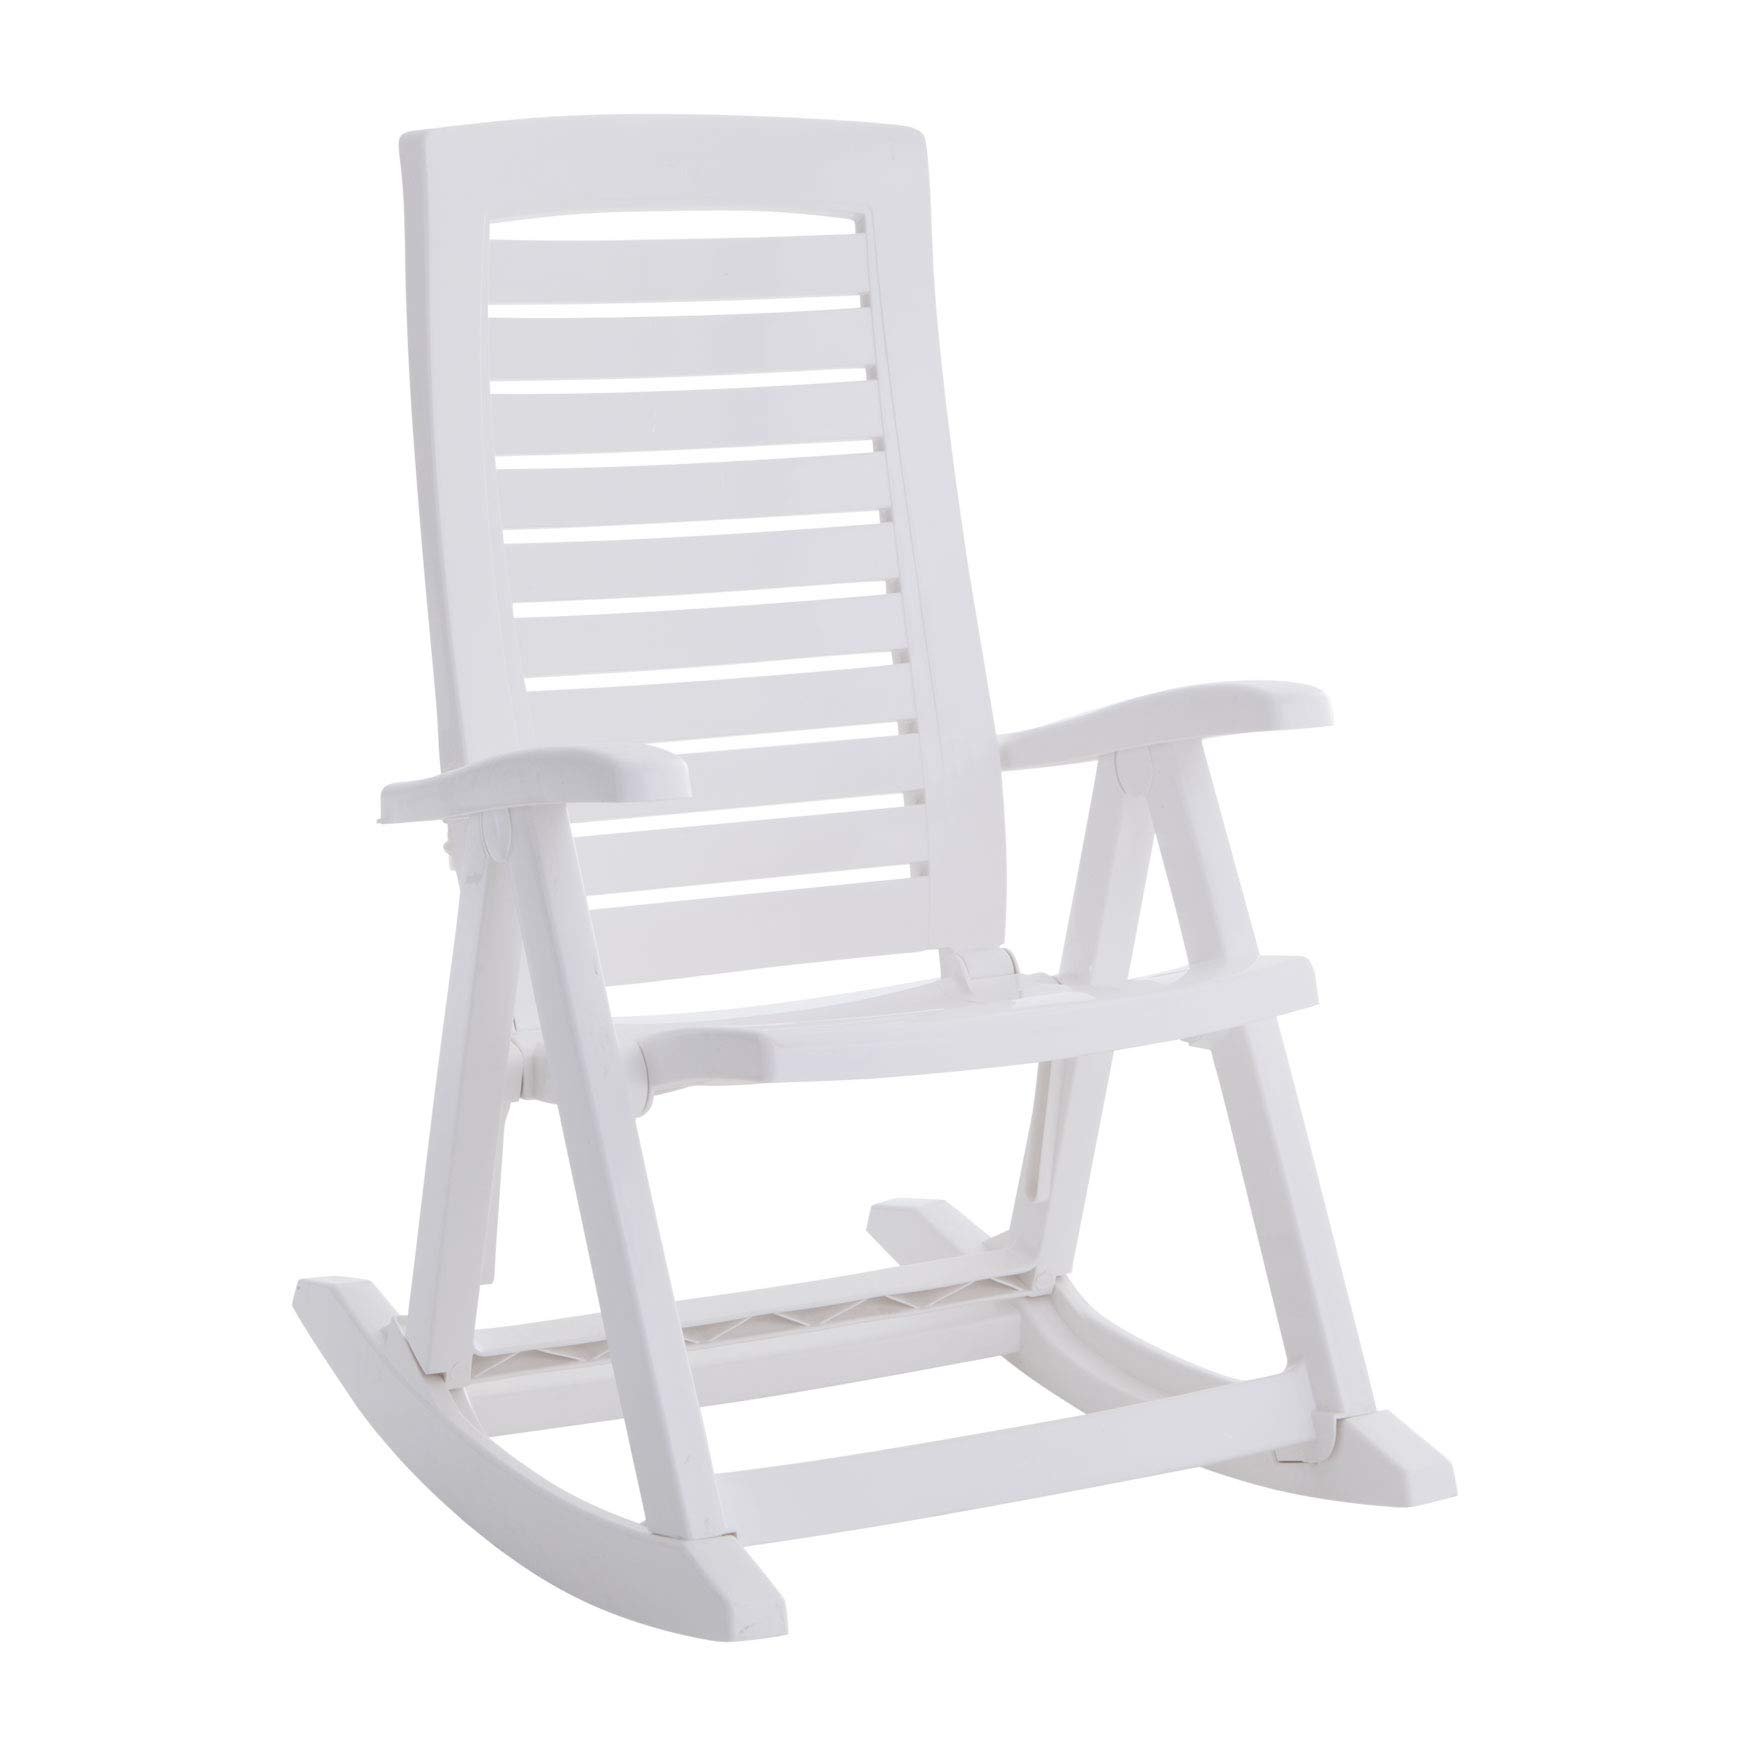 BrylaneHome Foldable Rocking Chair - White by BrylaneHome